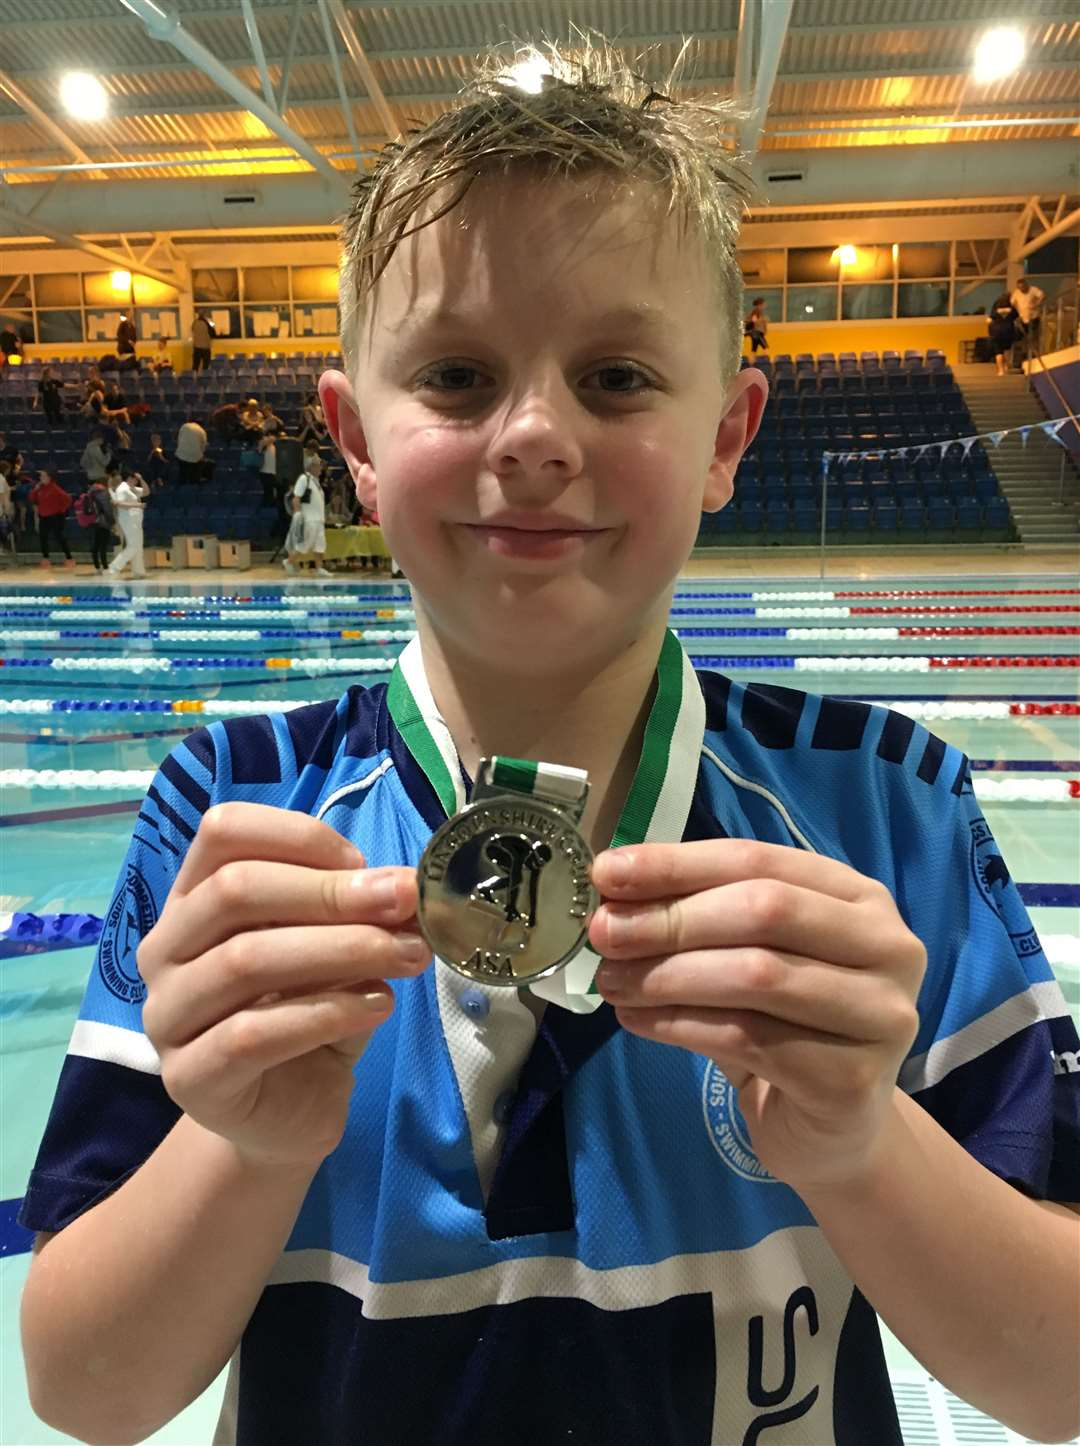 South Lincs Competitive Swimming Club medallist Aidan Evans.Photo supplied.